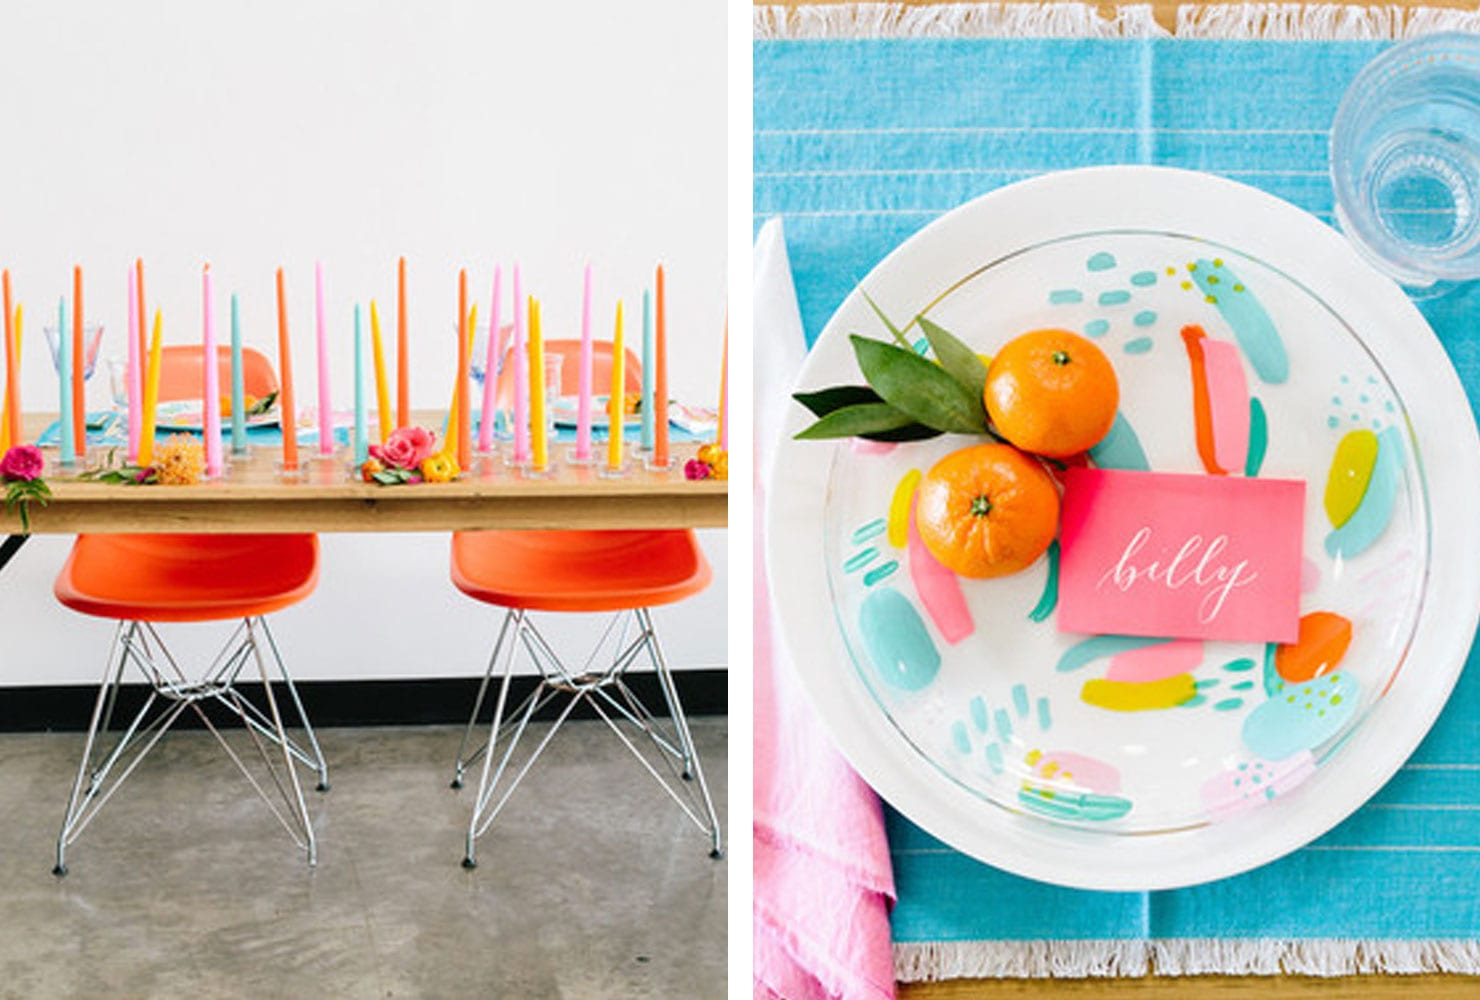 sweetheart table ideas for every season shutterfly modern brightness accent your focus runner with brightly colored candles and chairs clementine accents desk chair target curtain